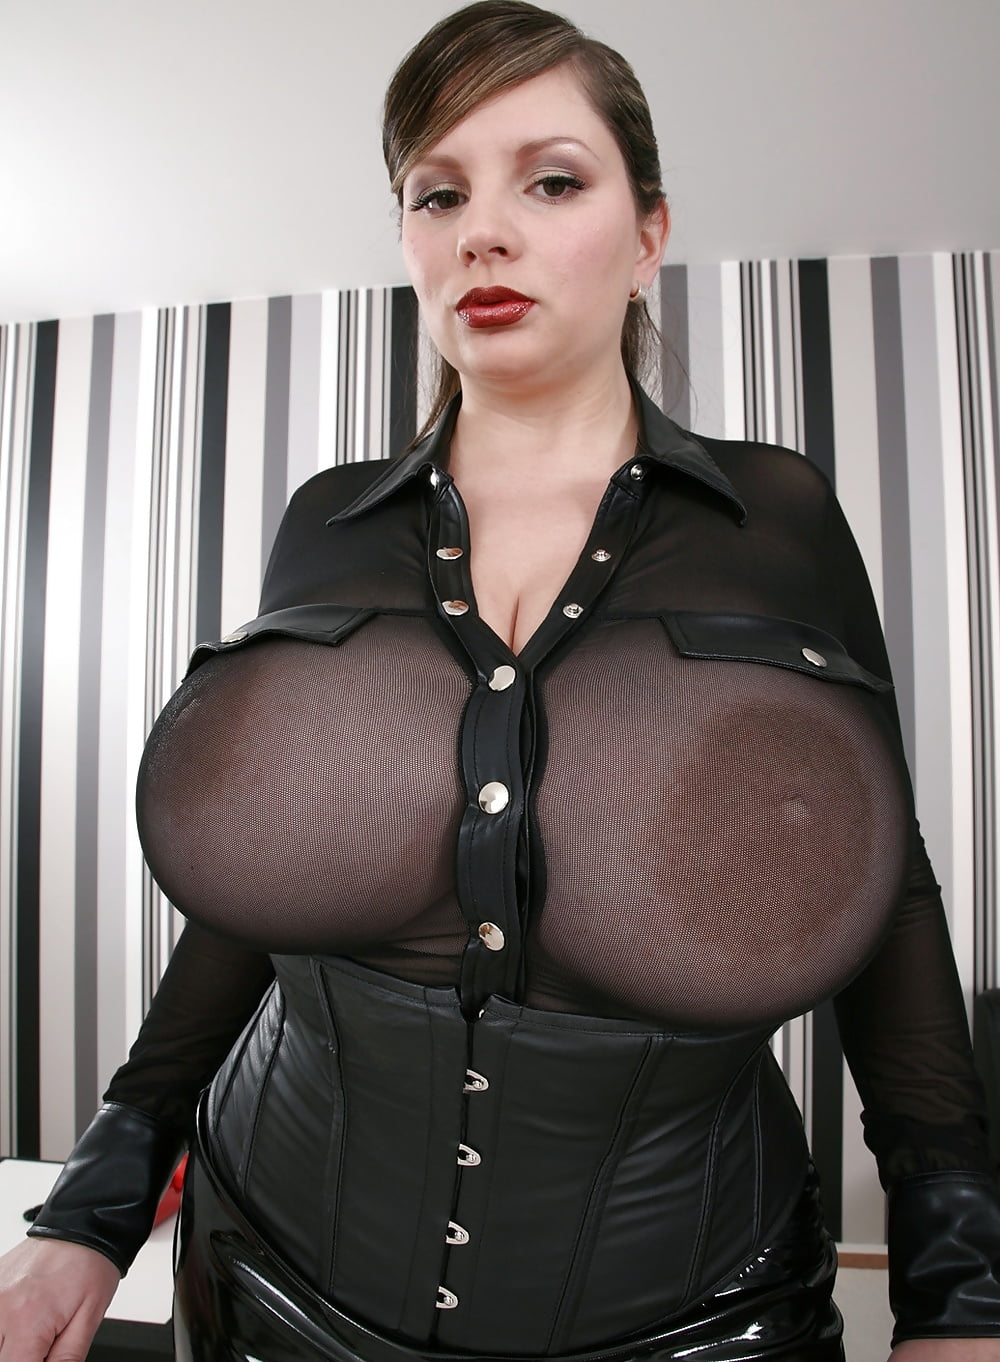 Gallery latex woman, latex picture samples